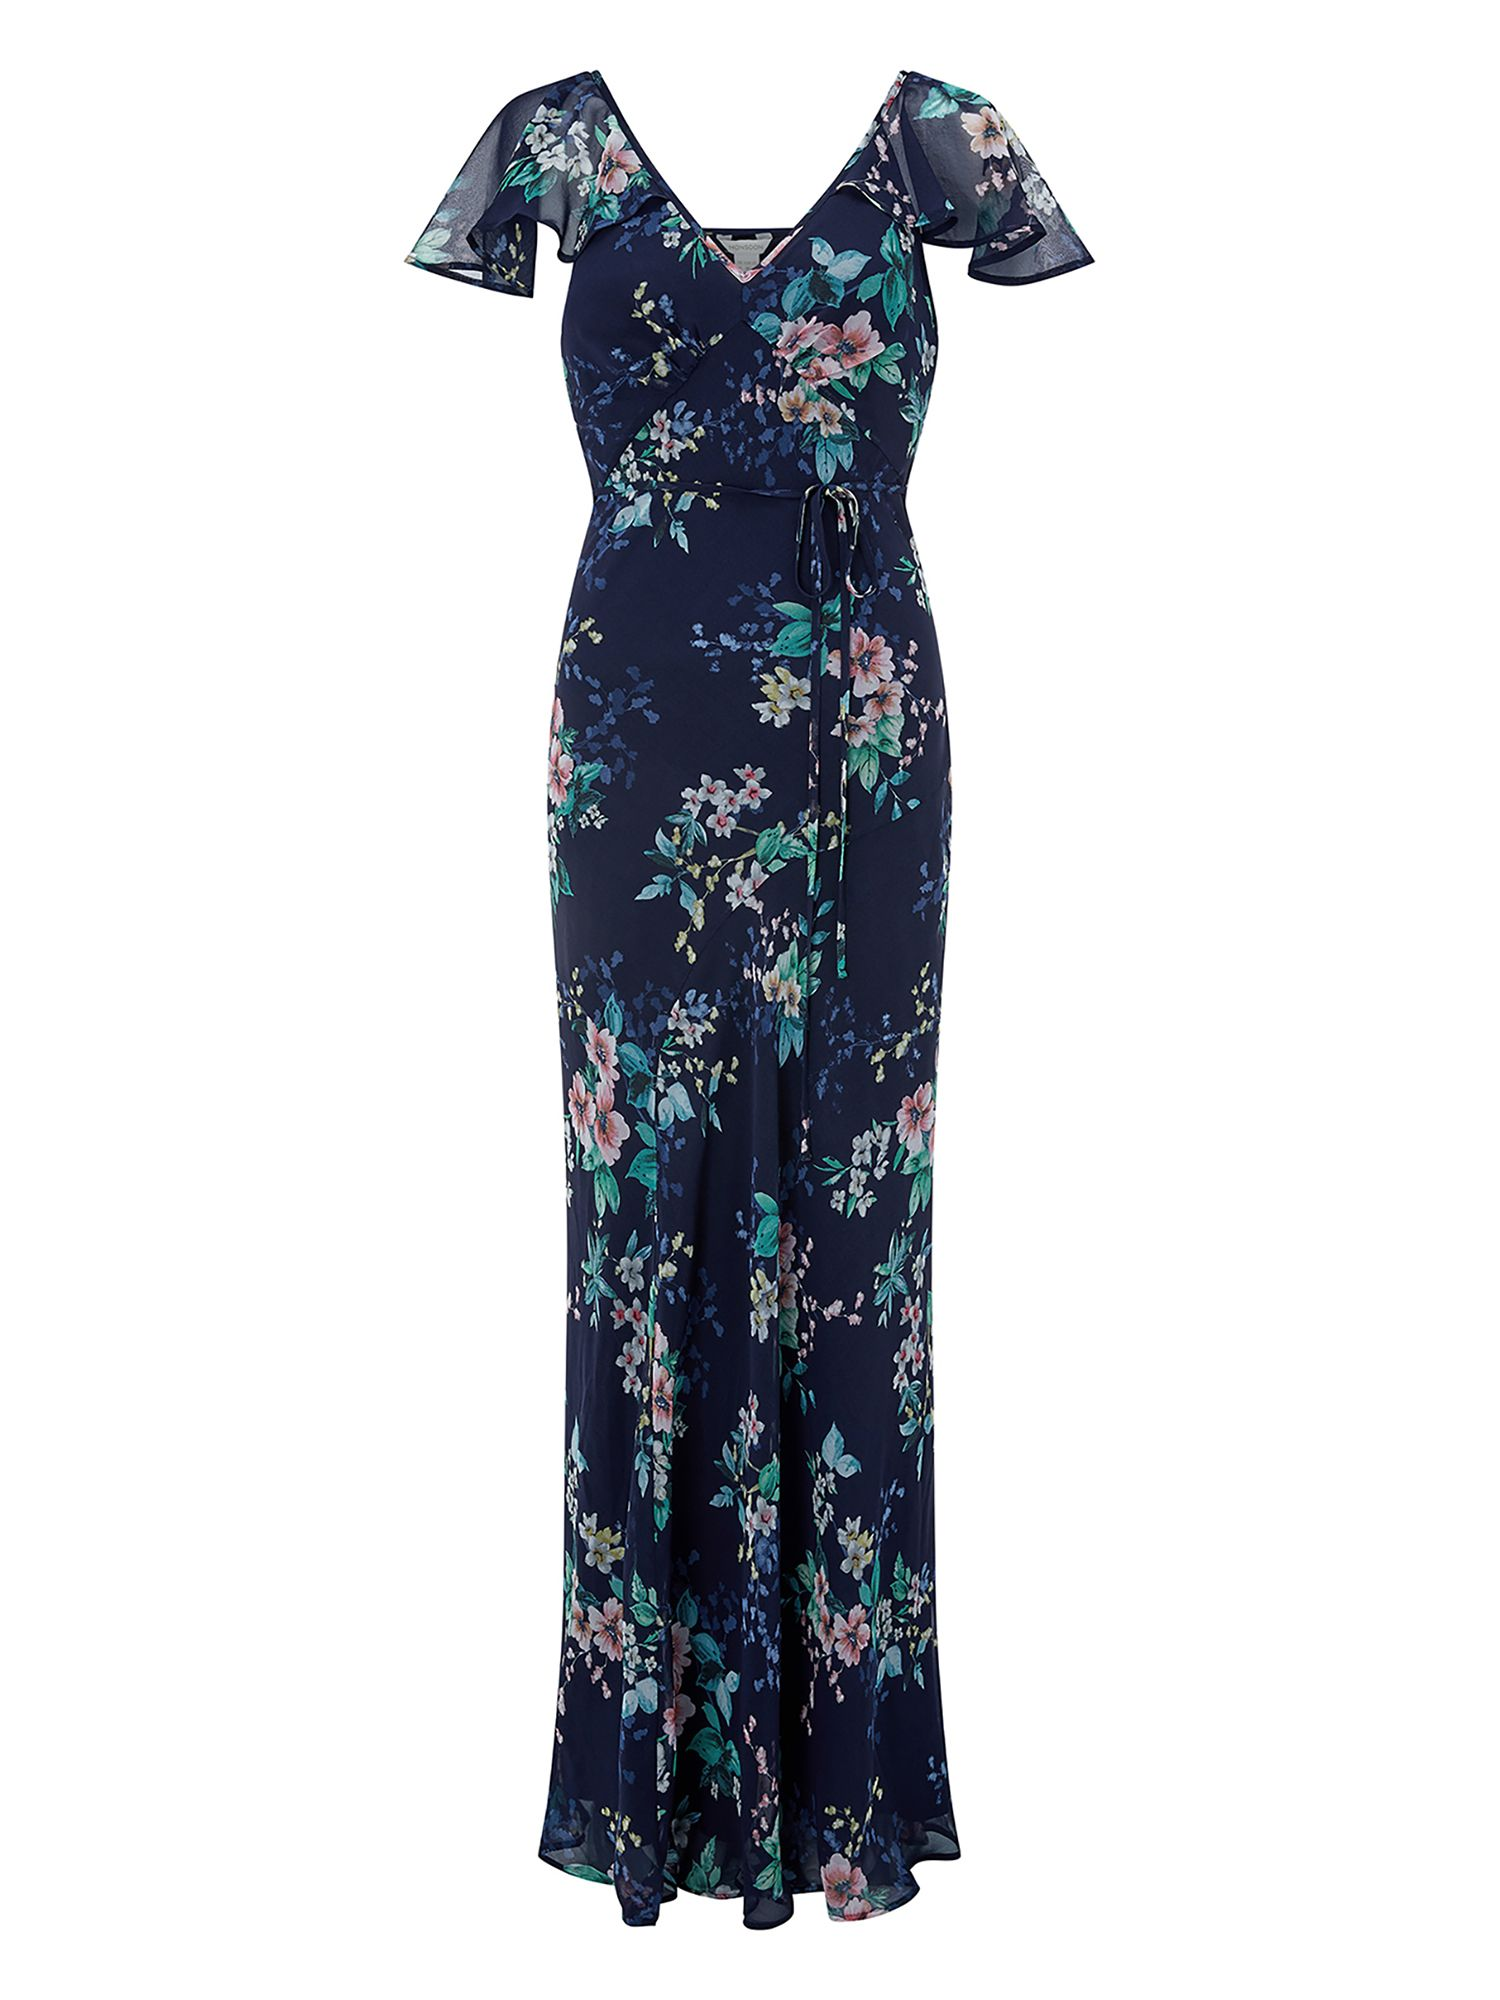 Monsoon Alicia Print Maxi Dress, Blue